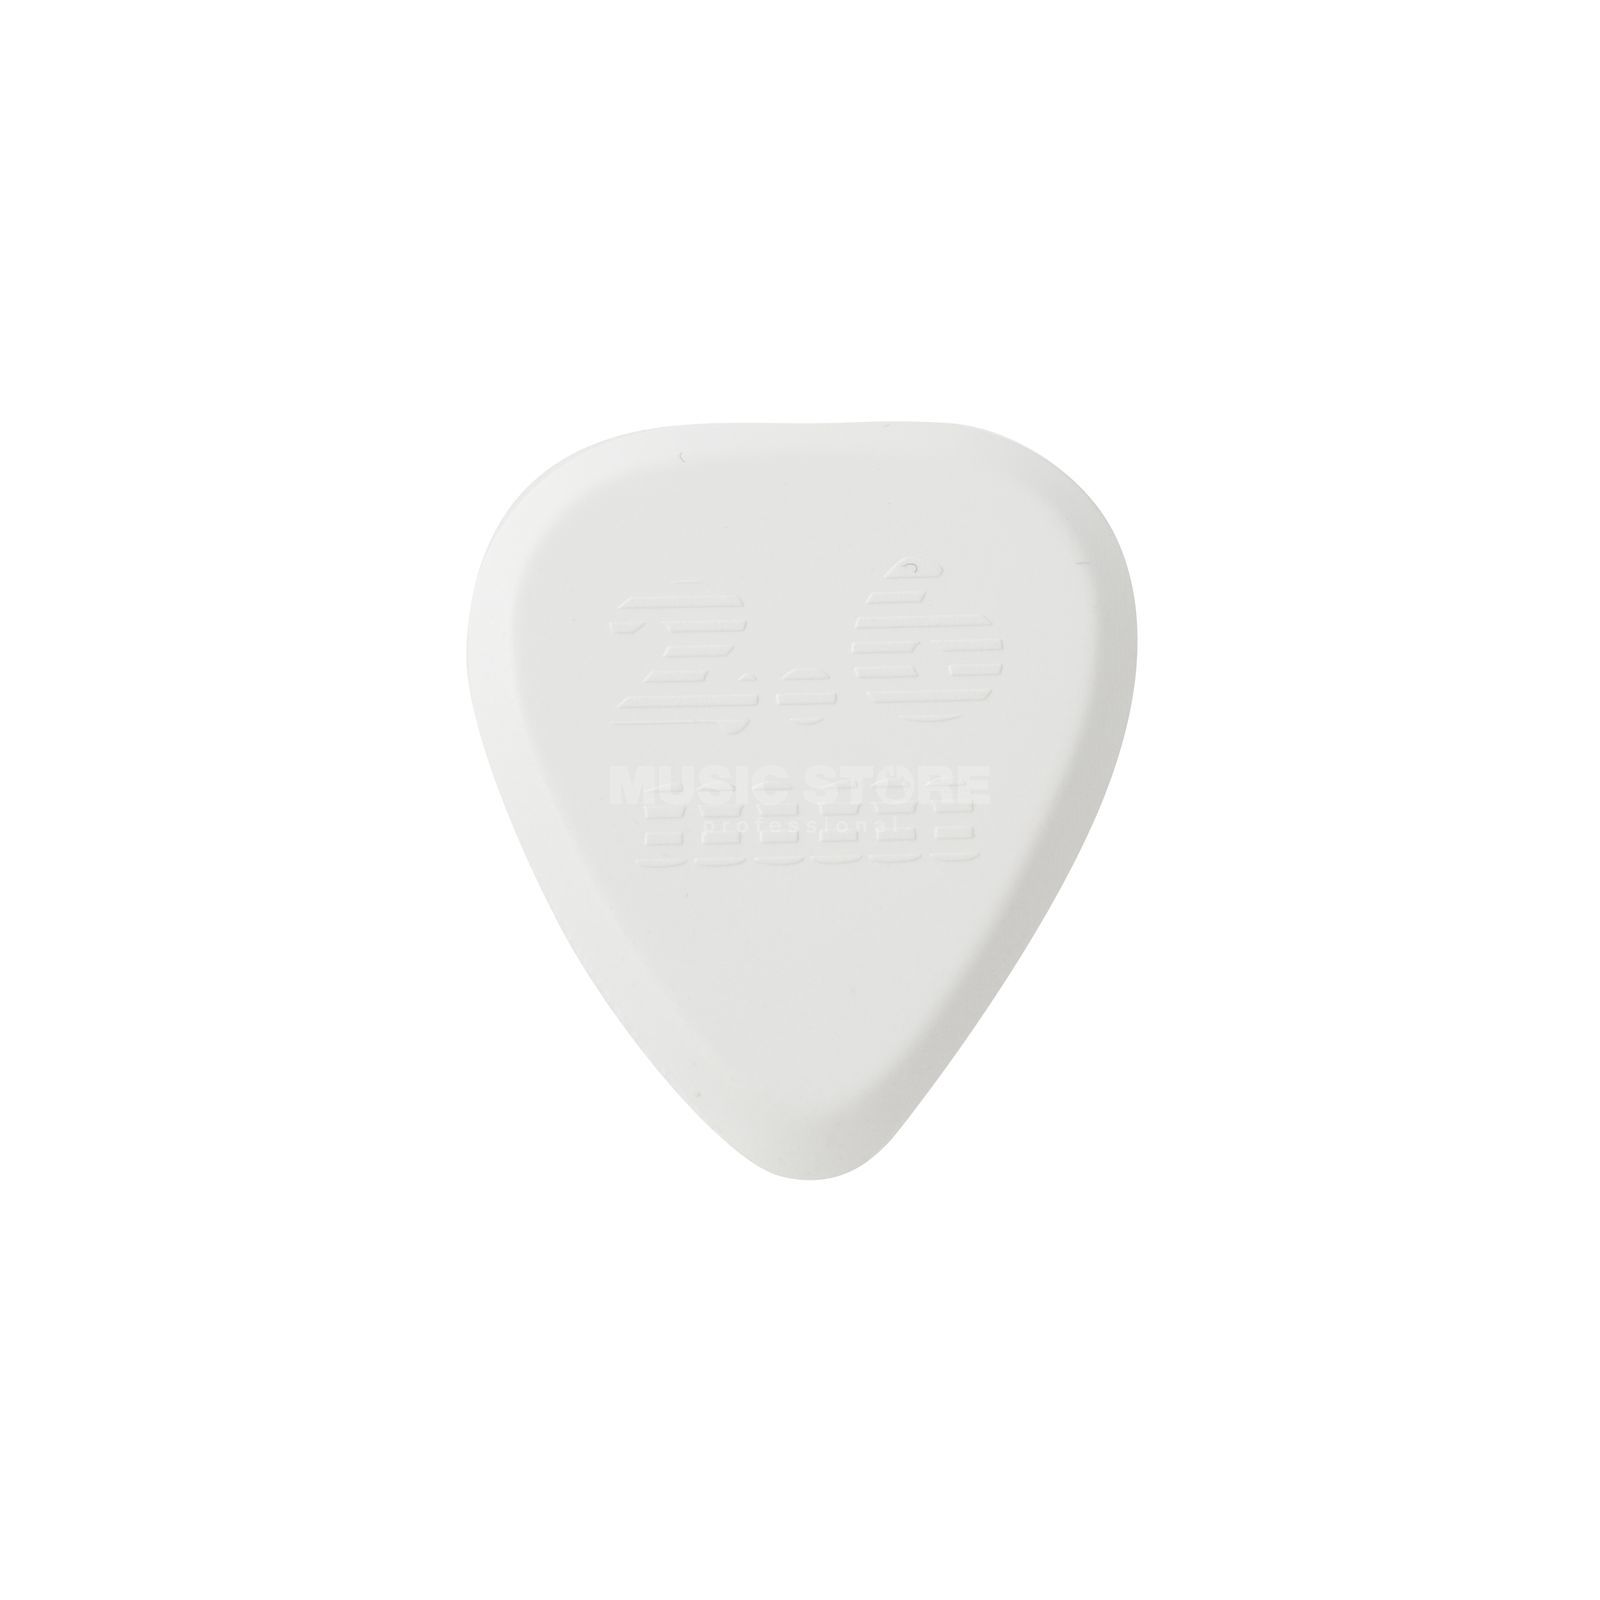 ChickenPicks Regular 2.6 Product Image